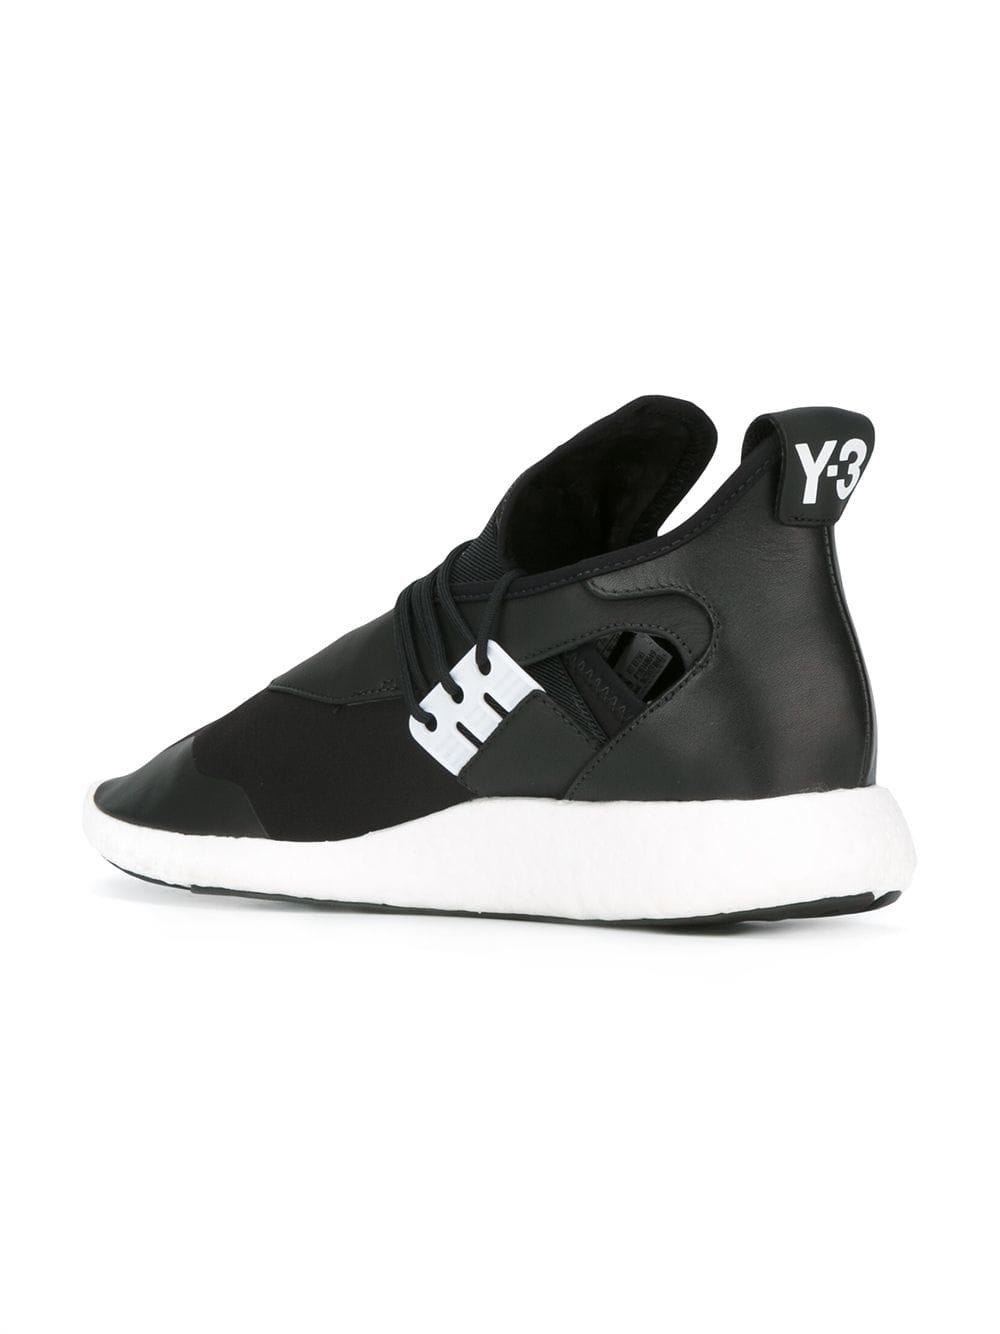 Y-3 Leather Elle Run Sneakers in Black